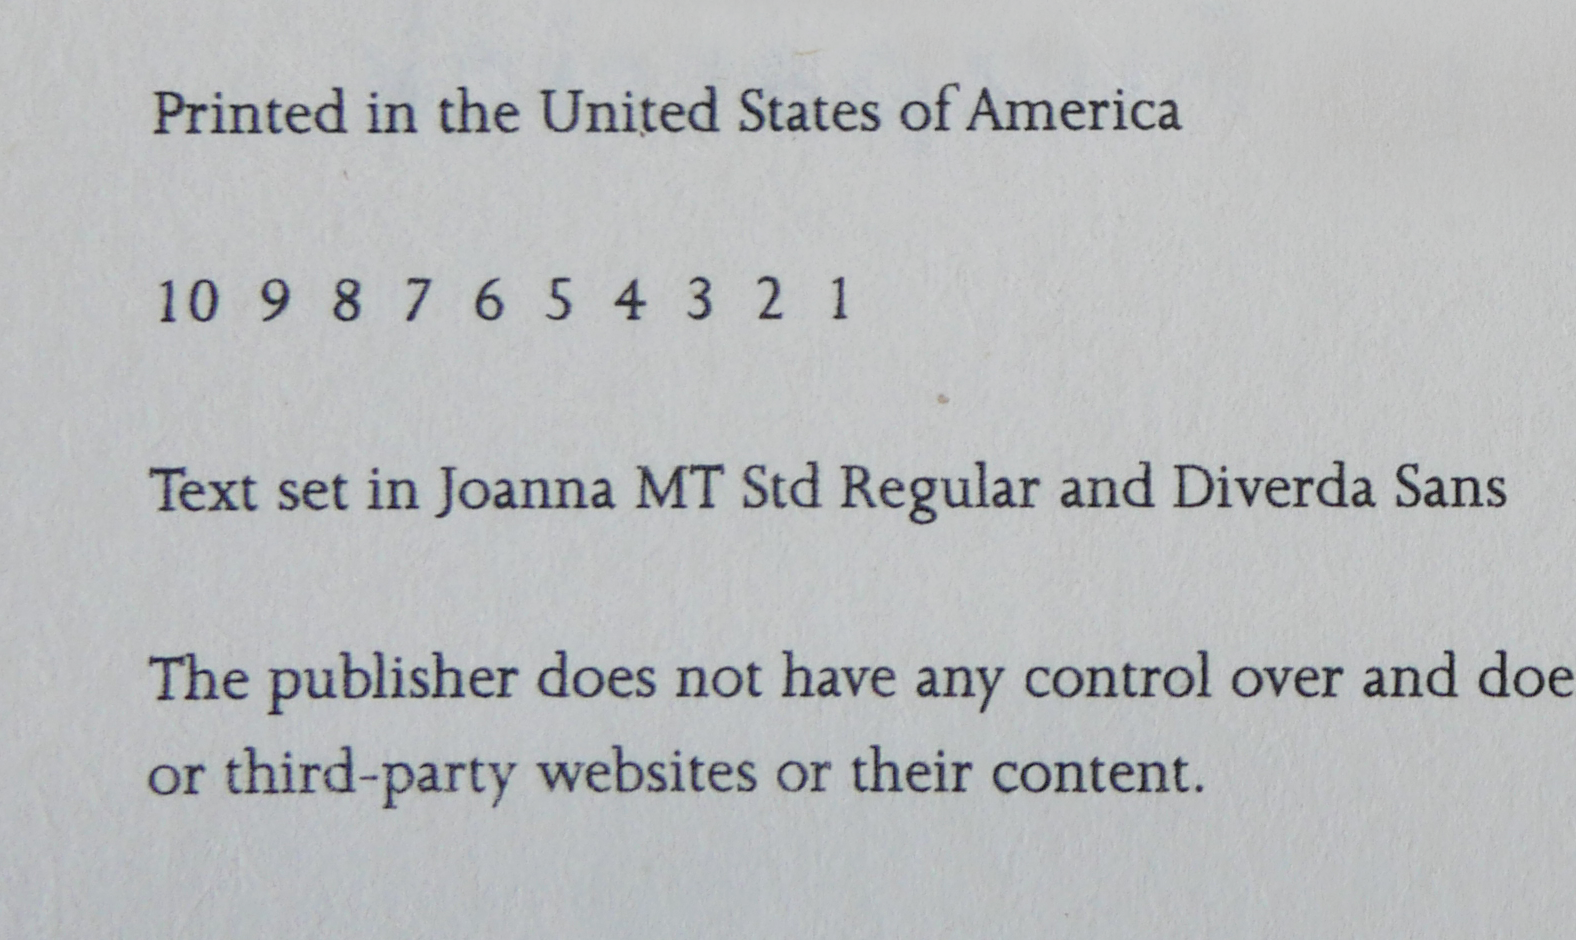 Why Do Books Copyright Pages Have 1 2 3 4 5 6 7 8 9 10